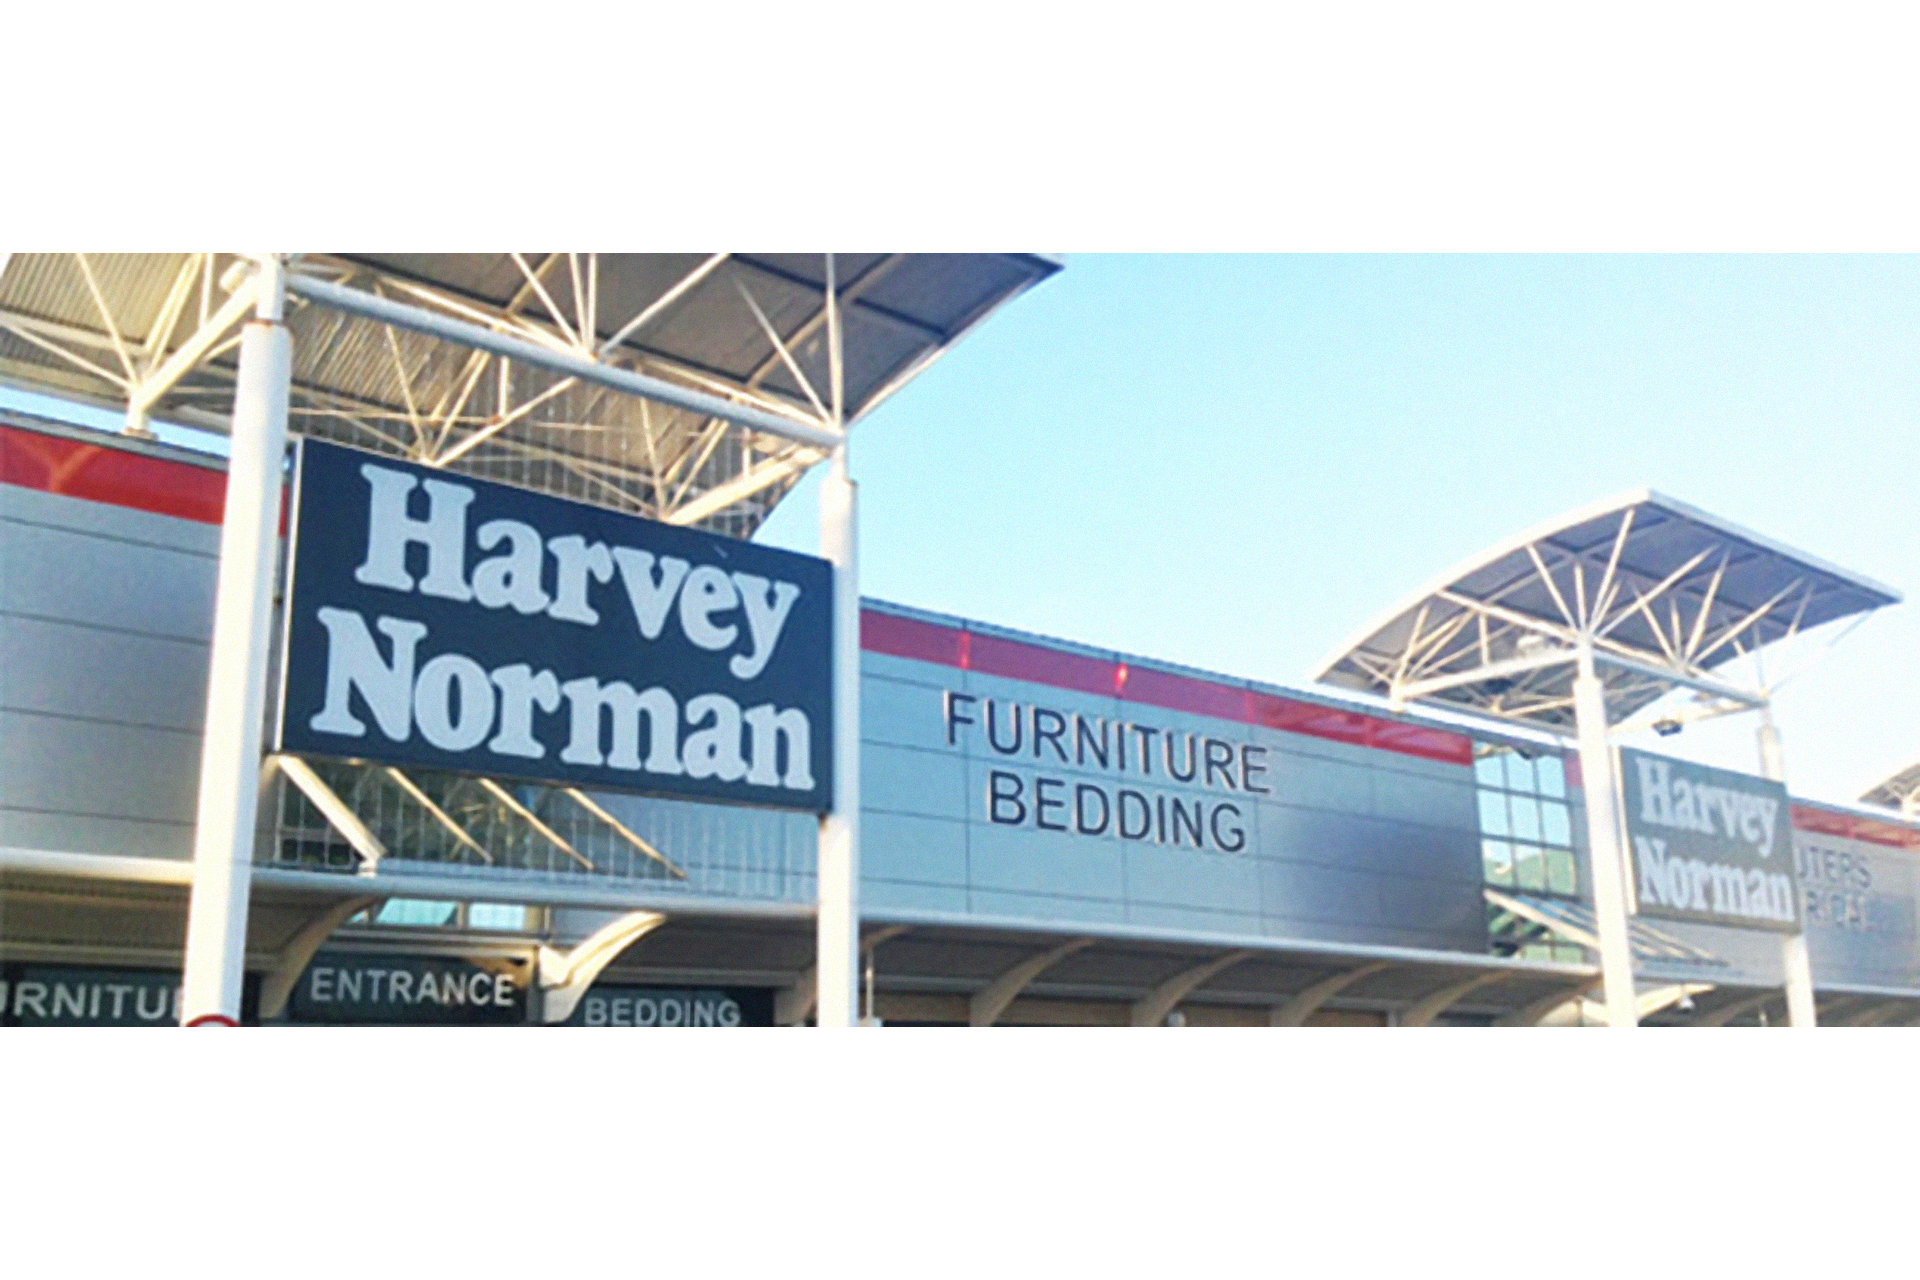 CSR and Harvey Norman